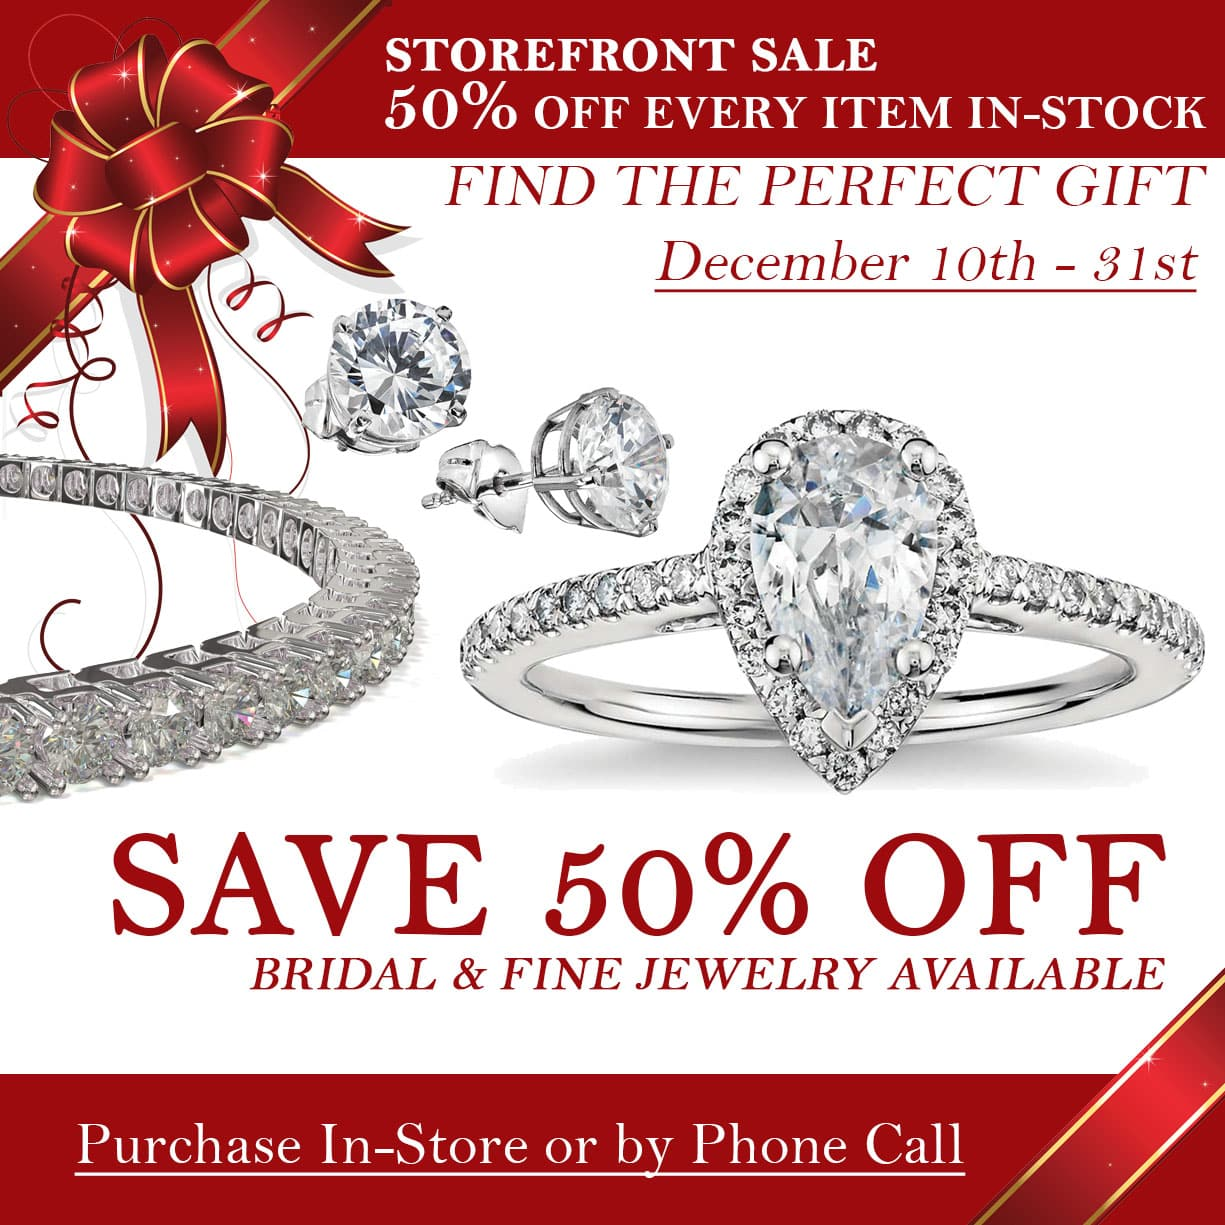 Storefront Sales Event - 50% Off Every Item In-Stock!